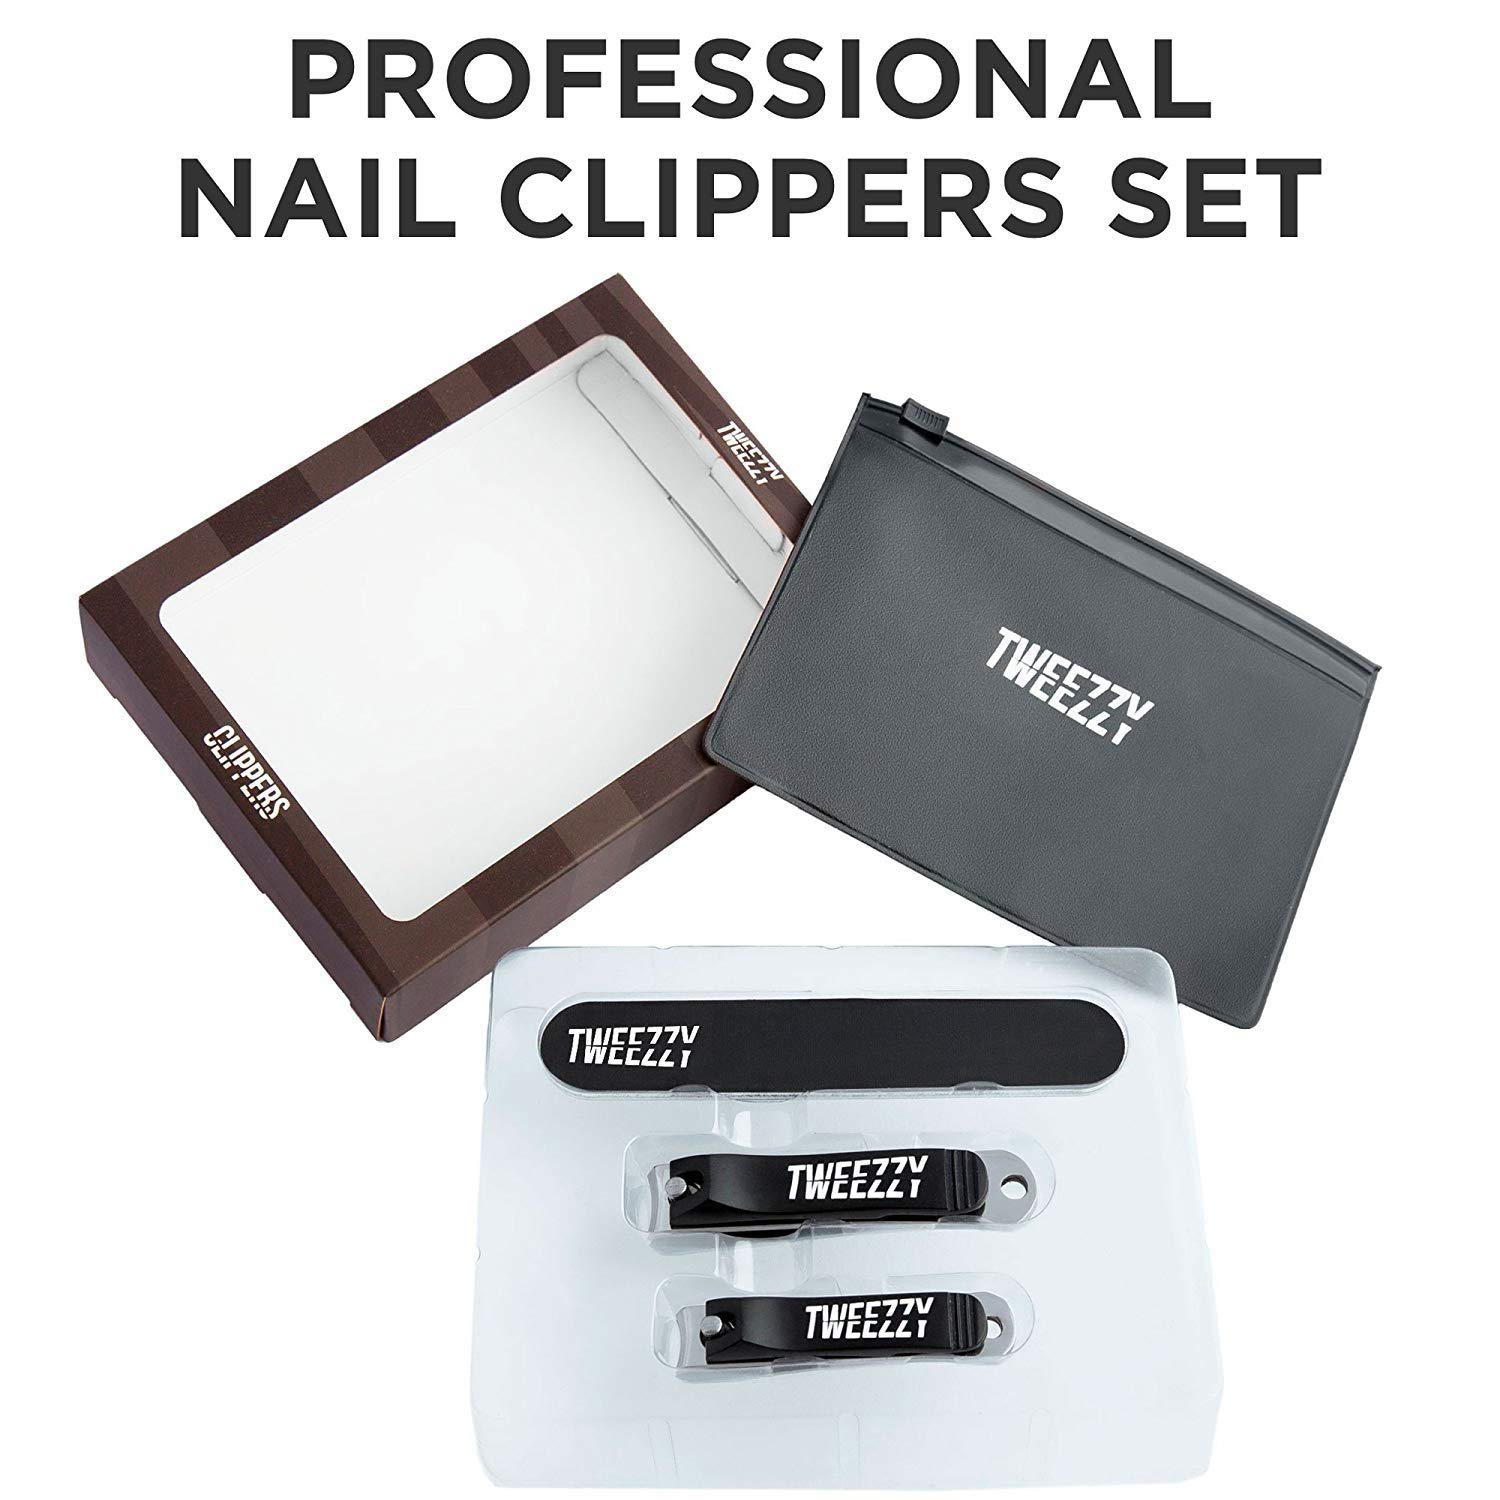 TWEEZZY Professional Grade Nail Clippers Set - Toenail Clipper for Thick Nails, Fingernail Clipper, Emery Board for Filing & PVC Storage Bag - Luxurious Manicure Set for Men & Women - Sharp Blades